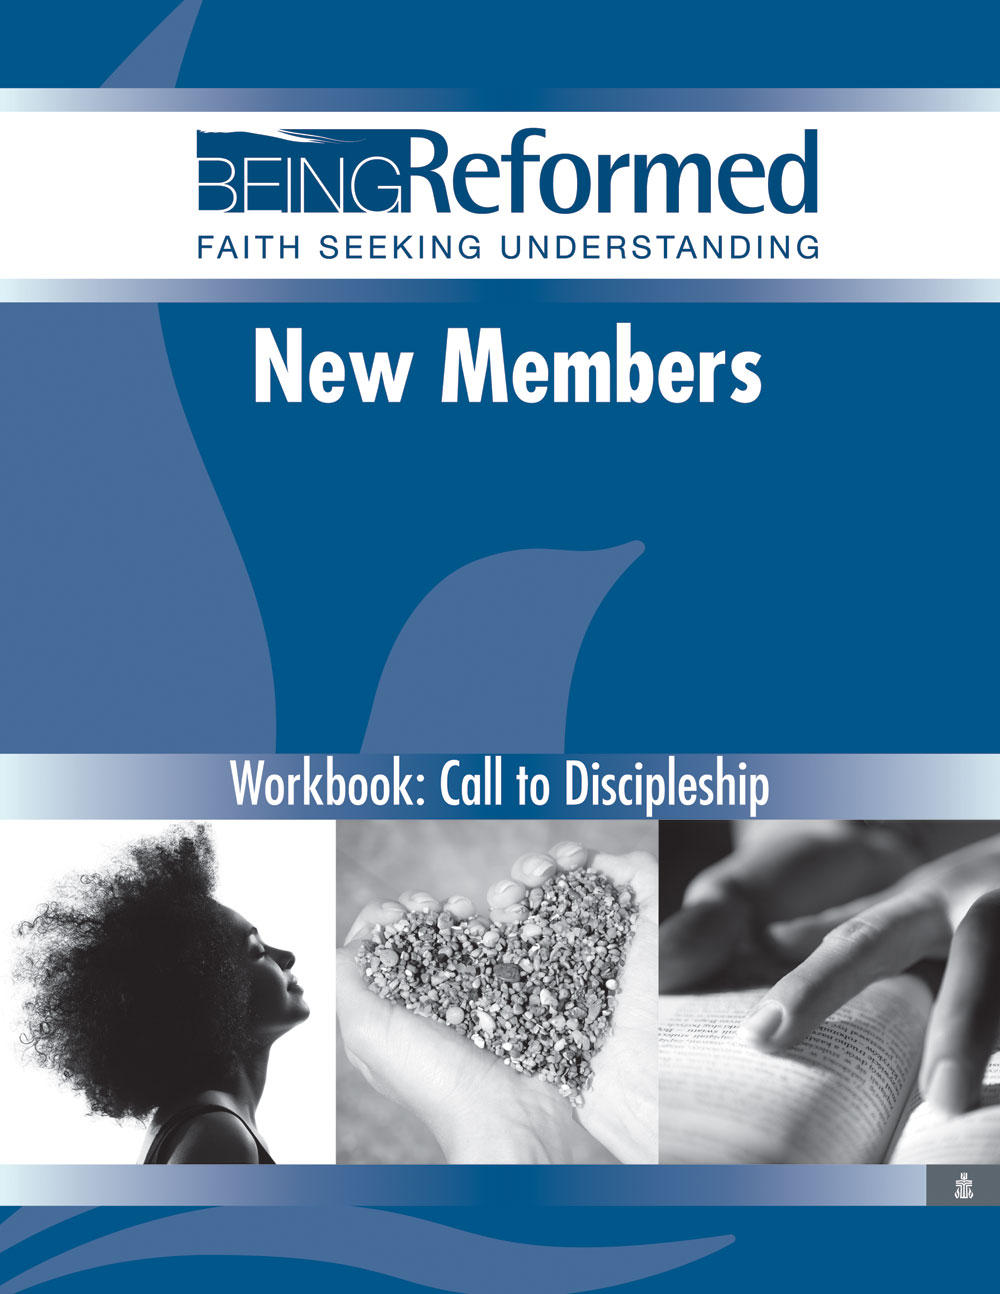 New Members: Call to Discipleship, Workbook